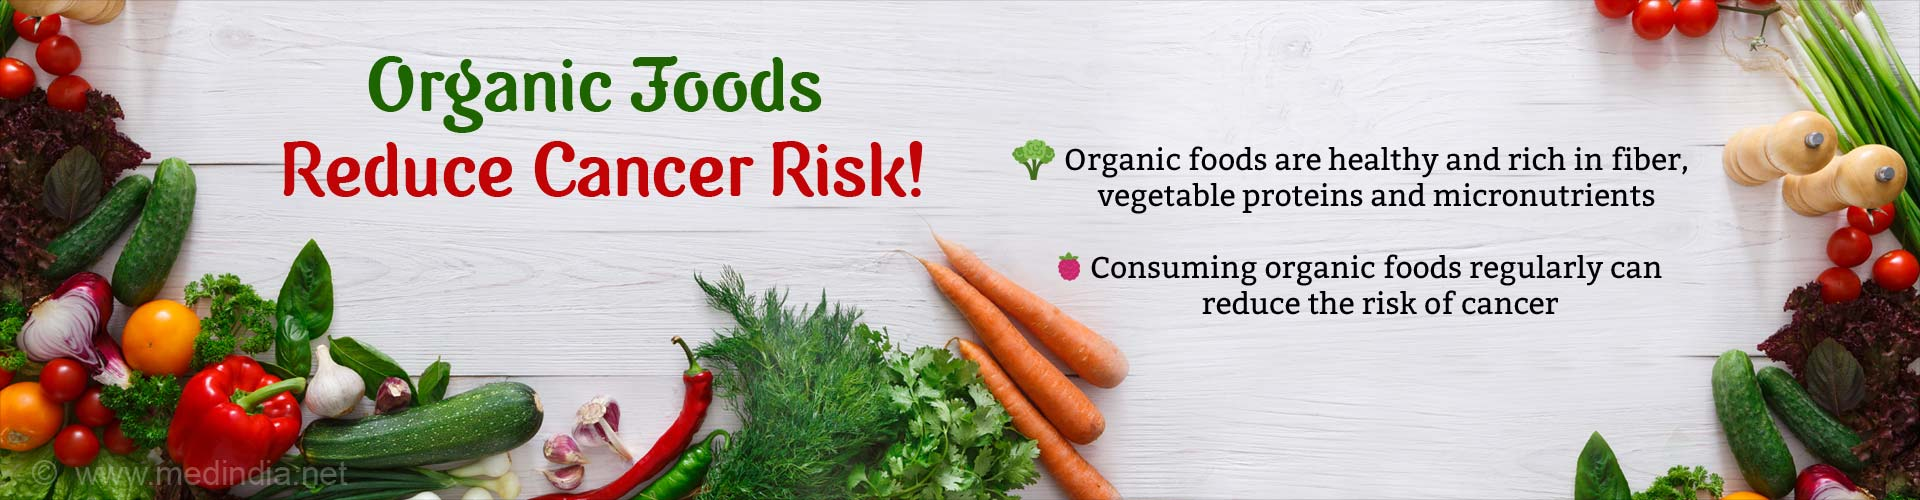 Organic Food Consumption Associated With Reduced Cancer Risk